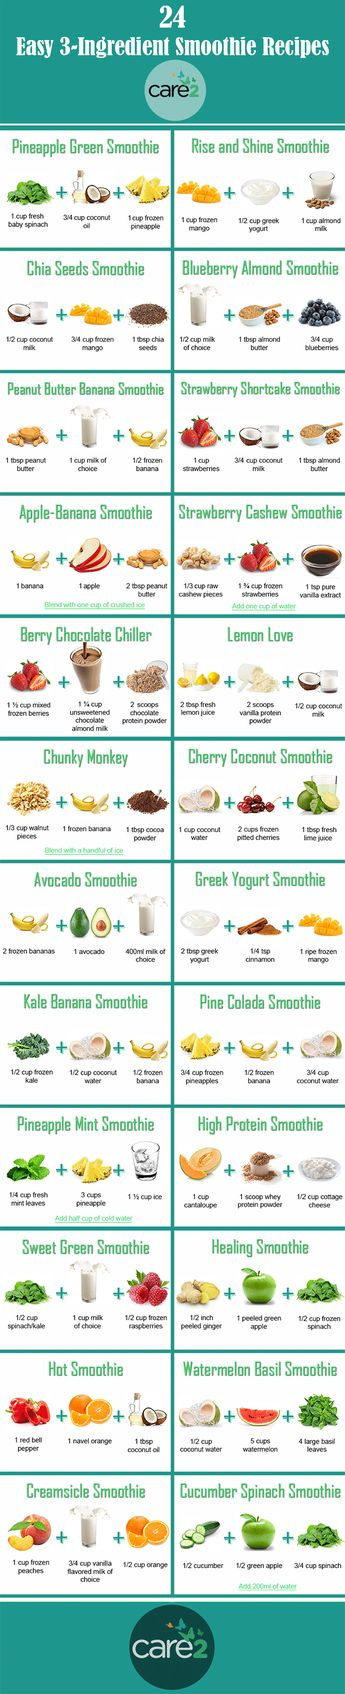 24 Easy 3-Ingredient Smoothie Recipes | Care2 Healthy Living